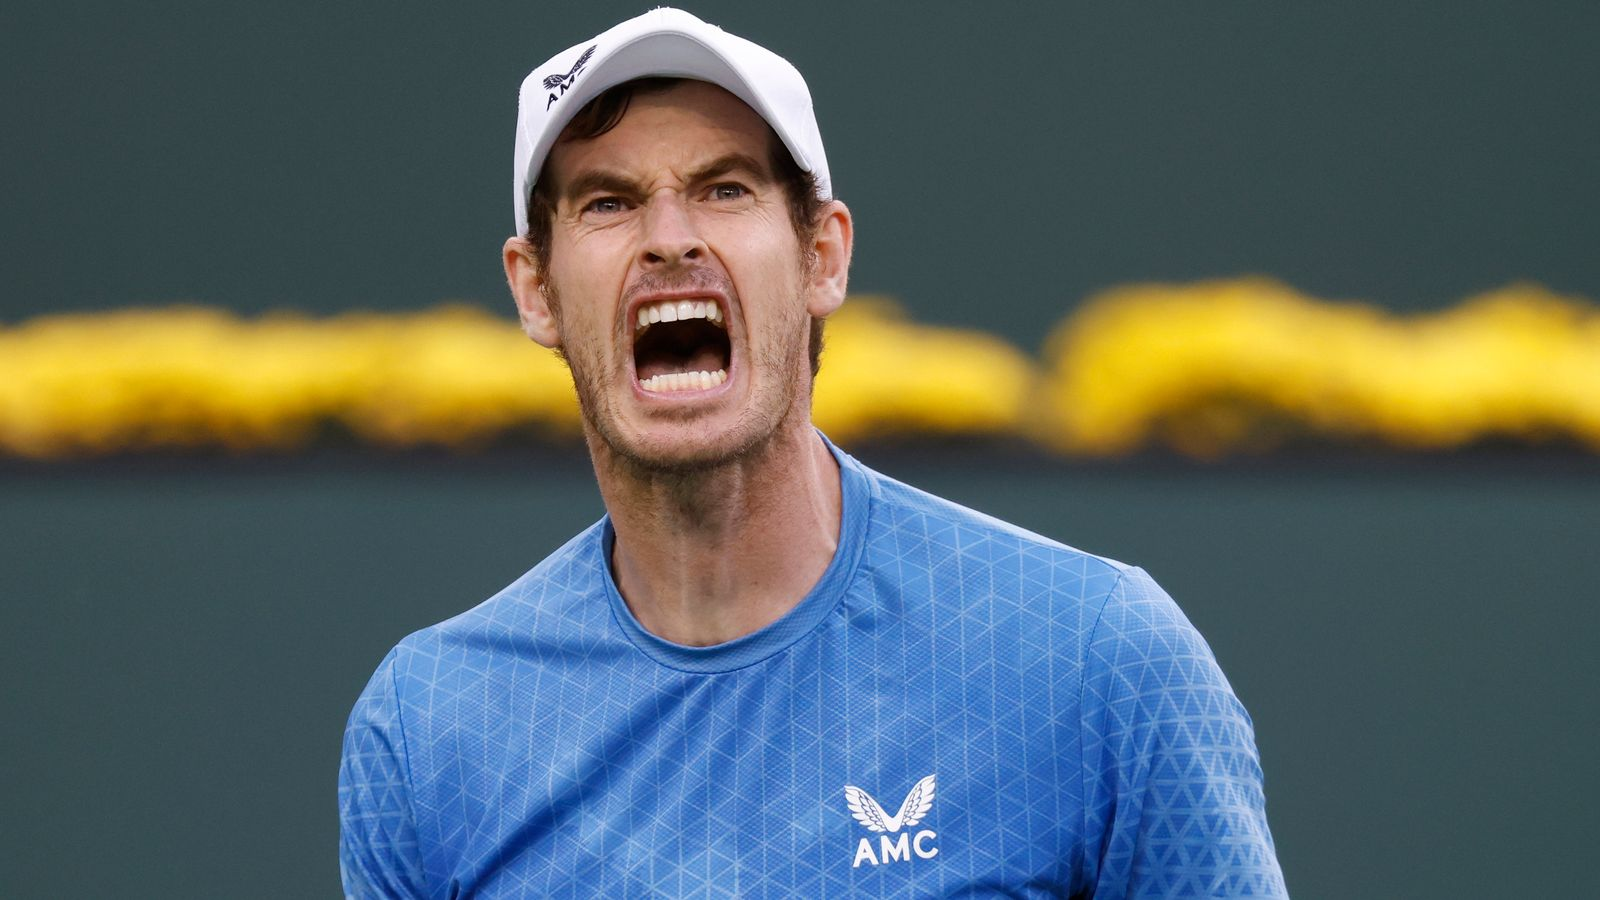 Andy Murray aims to be 'clinical and ruthless' ahead of Vienna tournament